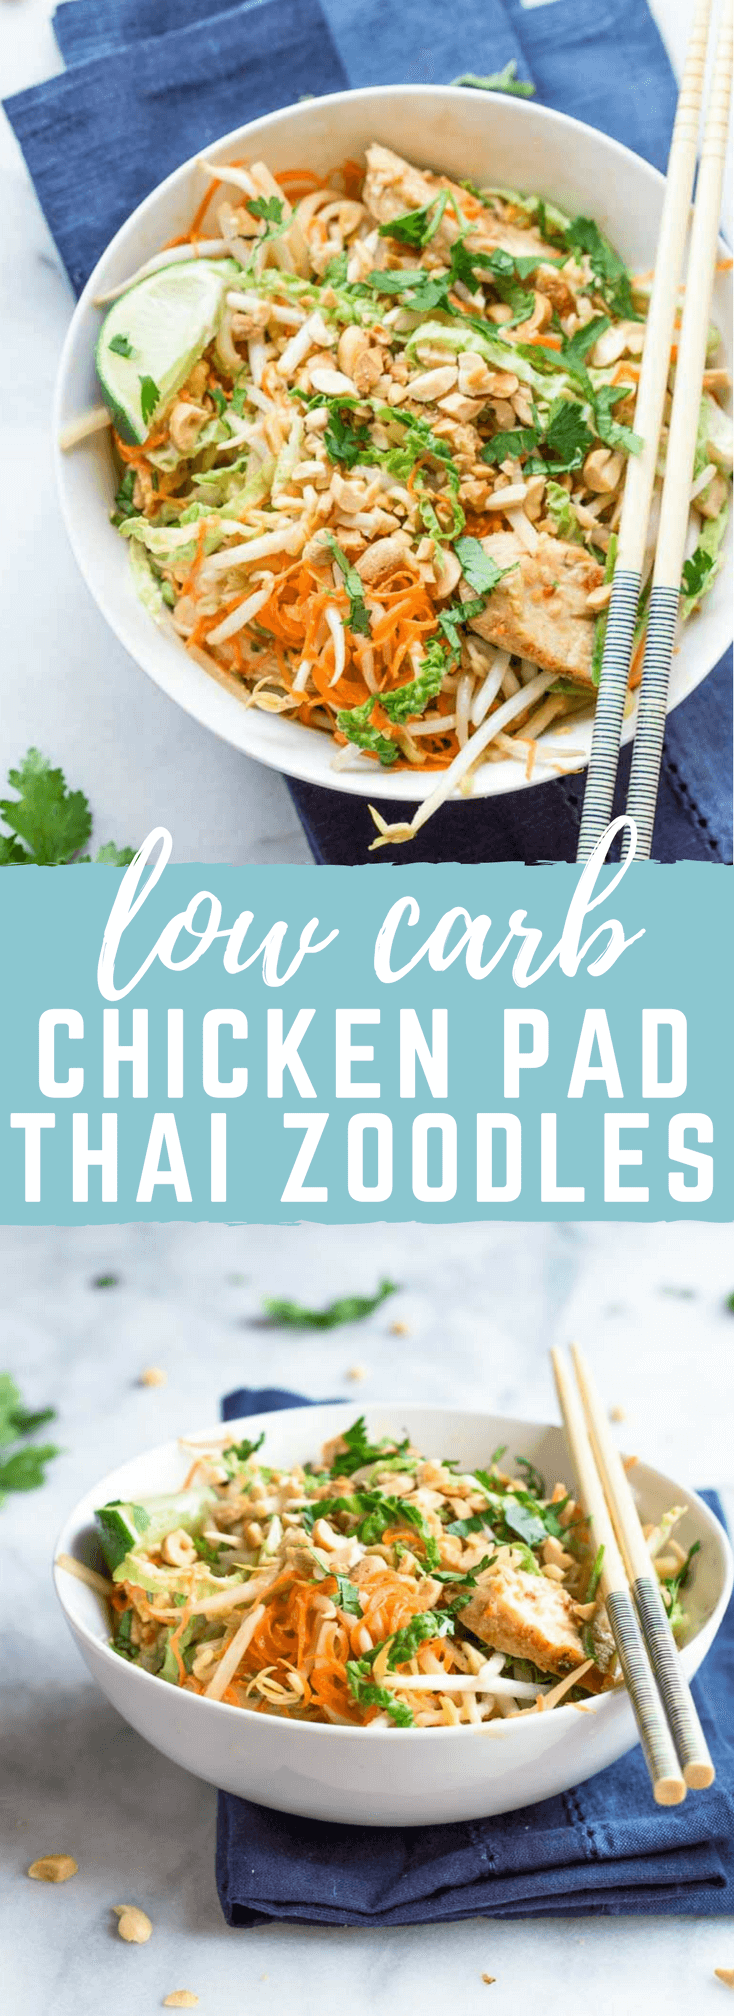 Low Carb Chicken Pad Thai Zoodles | Love & Zest